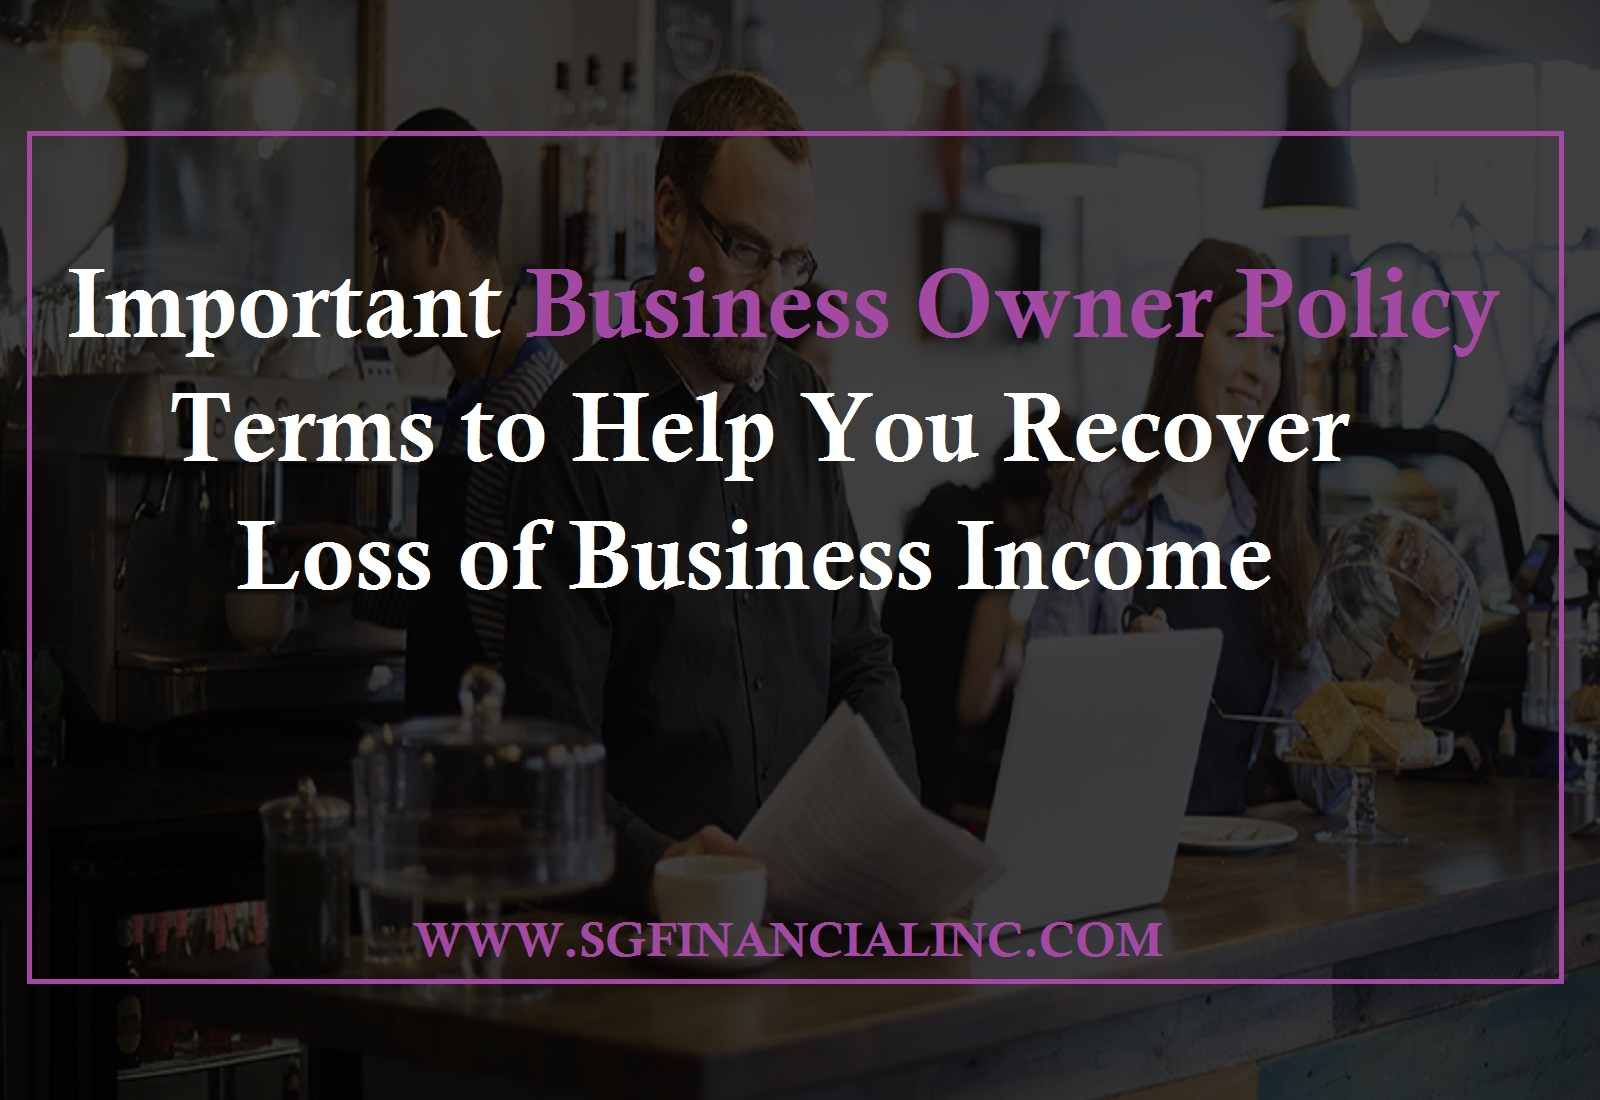 Important Business Owner Policy Terms to Help You Recover Loss of Business Income